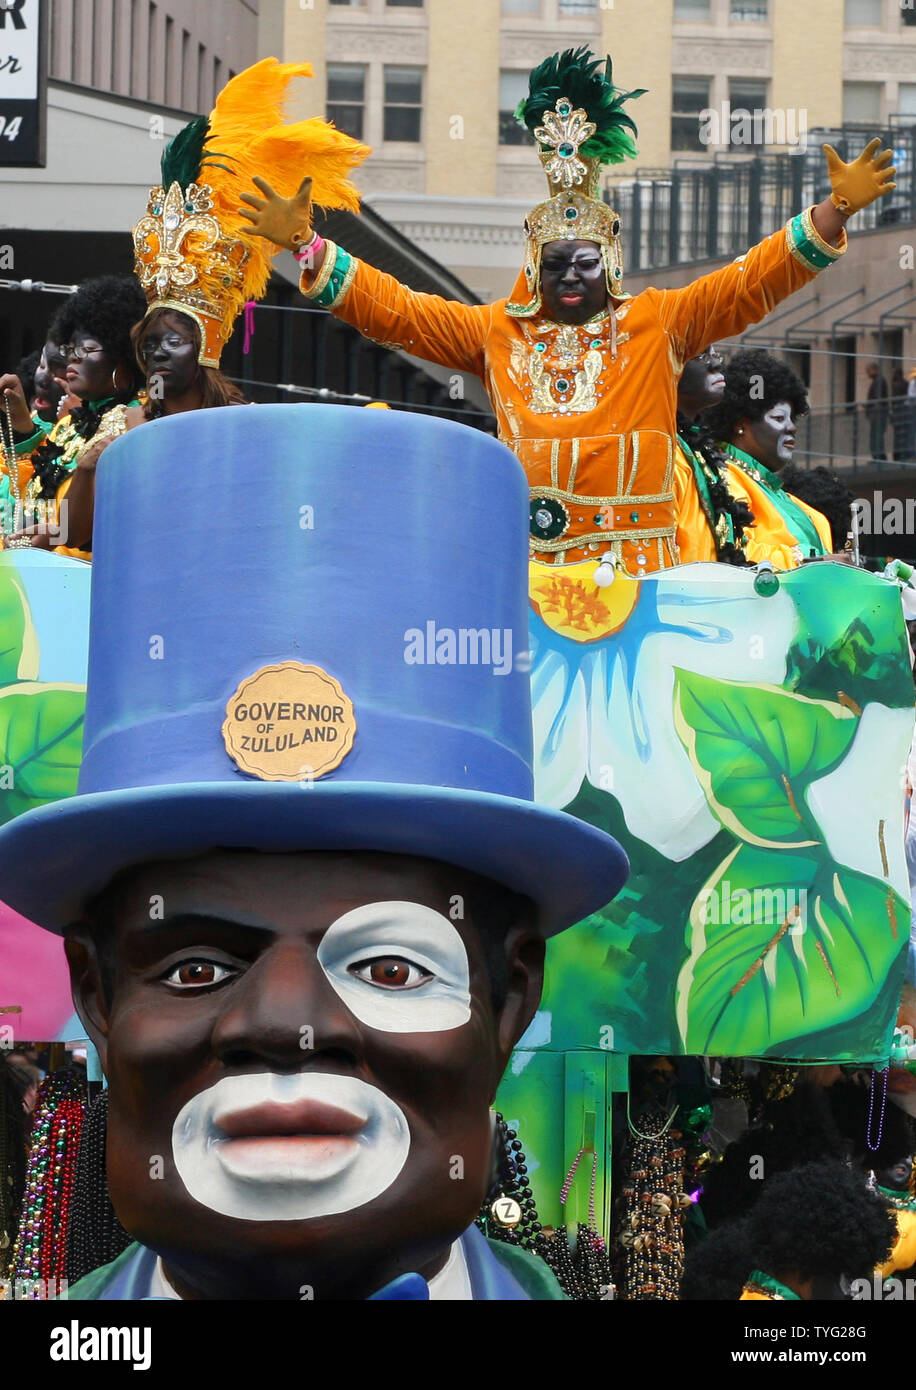 "The ""governor"" of the Zulu Social Aid and Pleasure Club greets his subjects on St. Charles Avenue in New Orleans on Mardi Gras, March 8, 2011. Zulu, a traditionally African-American Carnival organization, has been parading for over a hundred years.  (UPI/A.J. Sisco) Stock Photo"